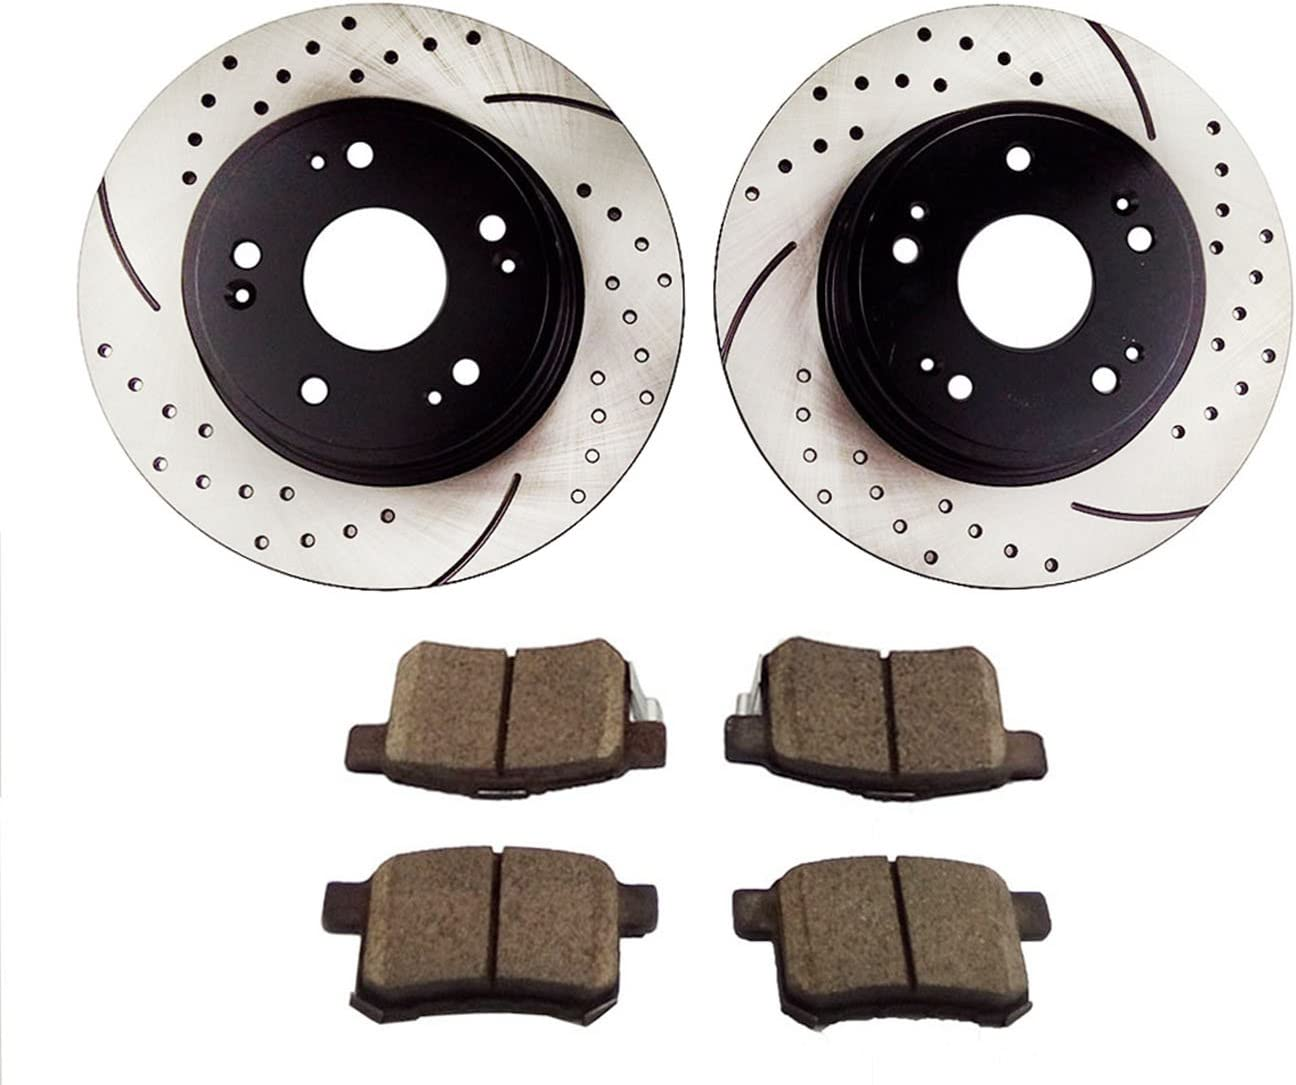 Atmansta QPD10029 Rear Daily bargain sale Brake kit Drilled Slotted with Rotors and Max 66% OFF